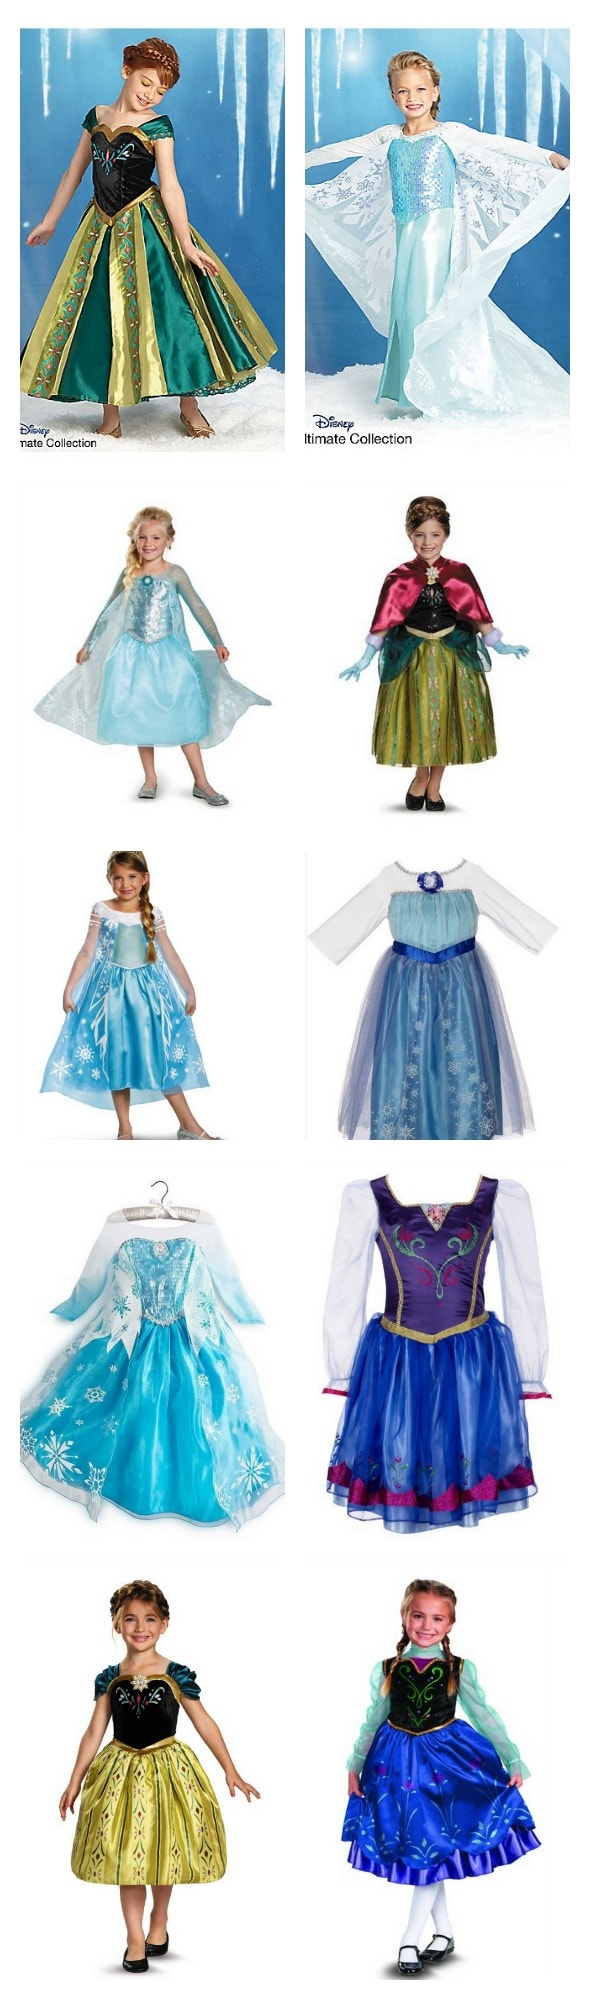 frozen_halloween_costumes & 10 Disneyu0027s Frozen Halloween Costumes: Where To Purchase (Highs And ...